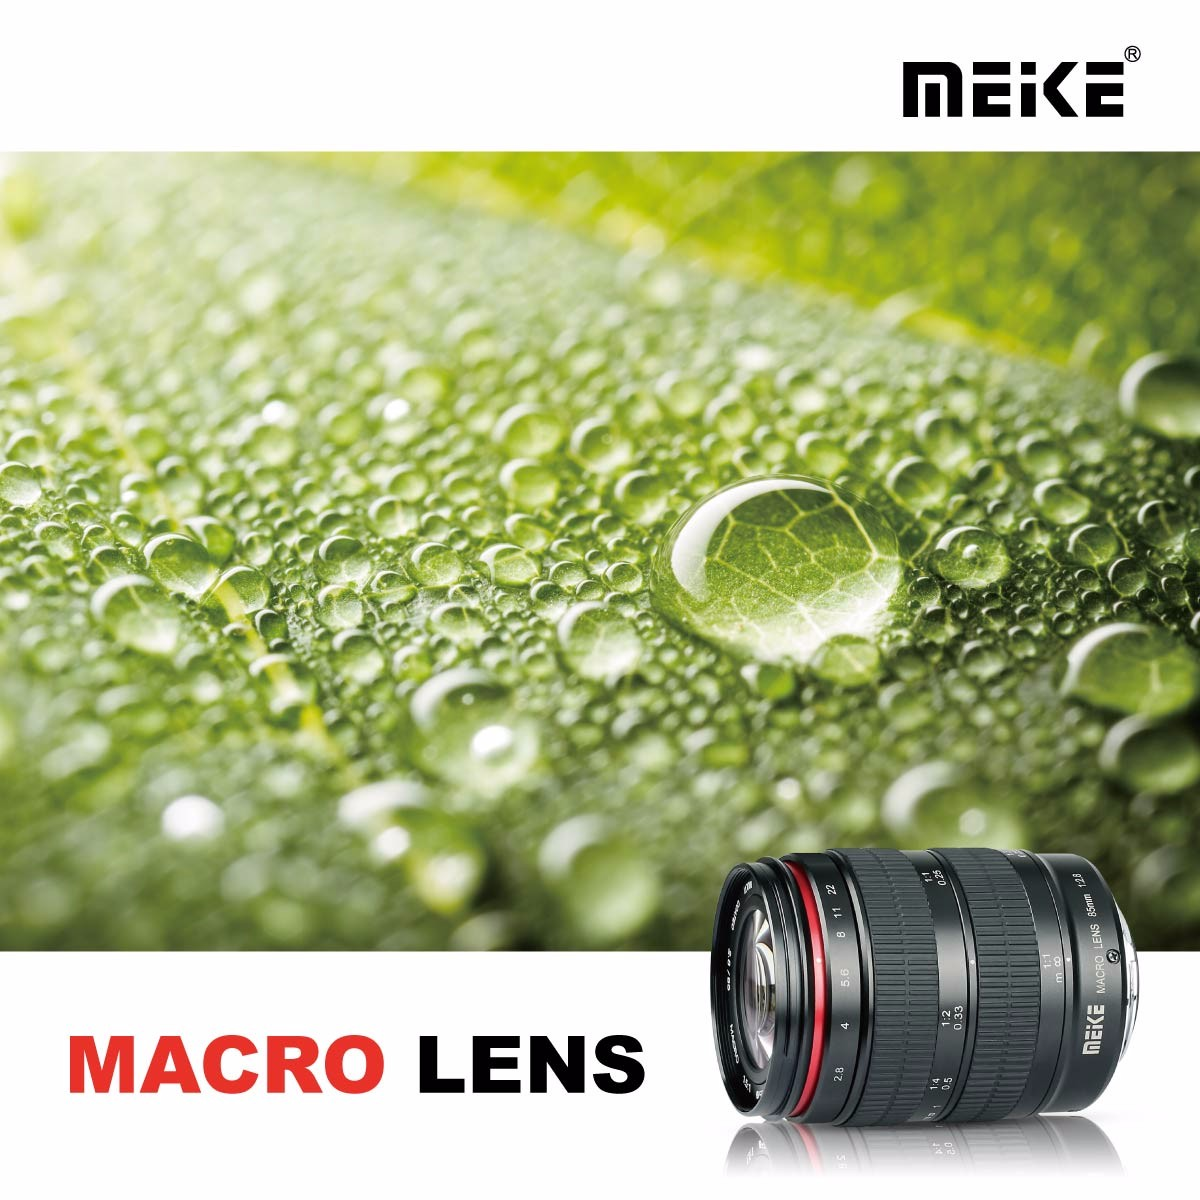 New Manual Focus Meike 85mm f/2 8 Macro Lens - Fuji Addict